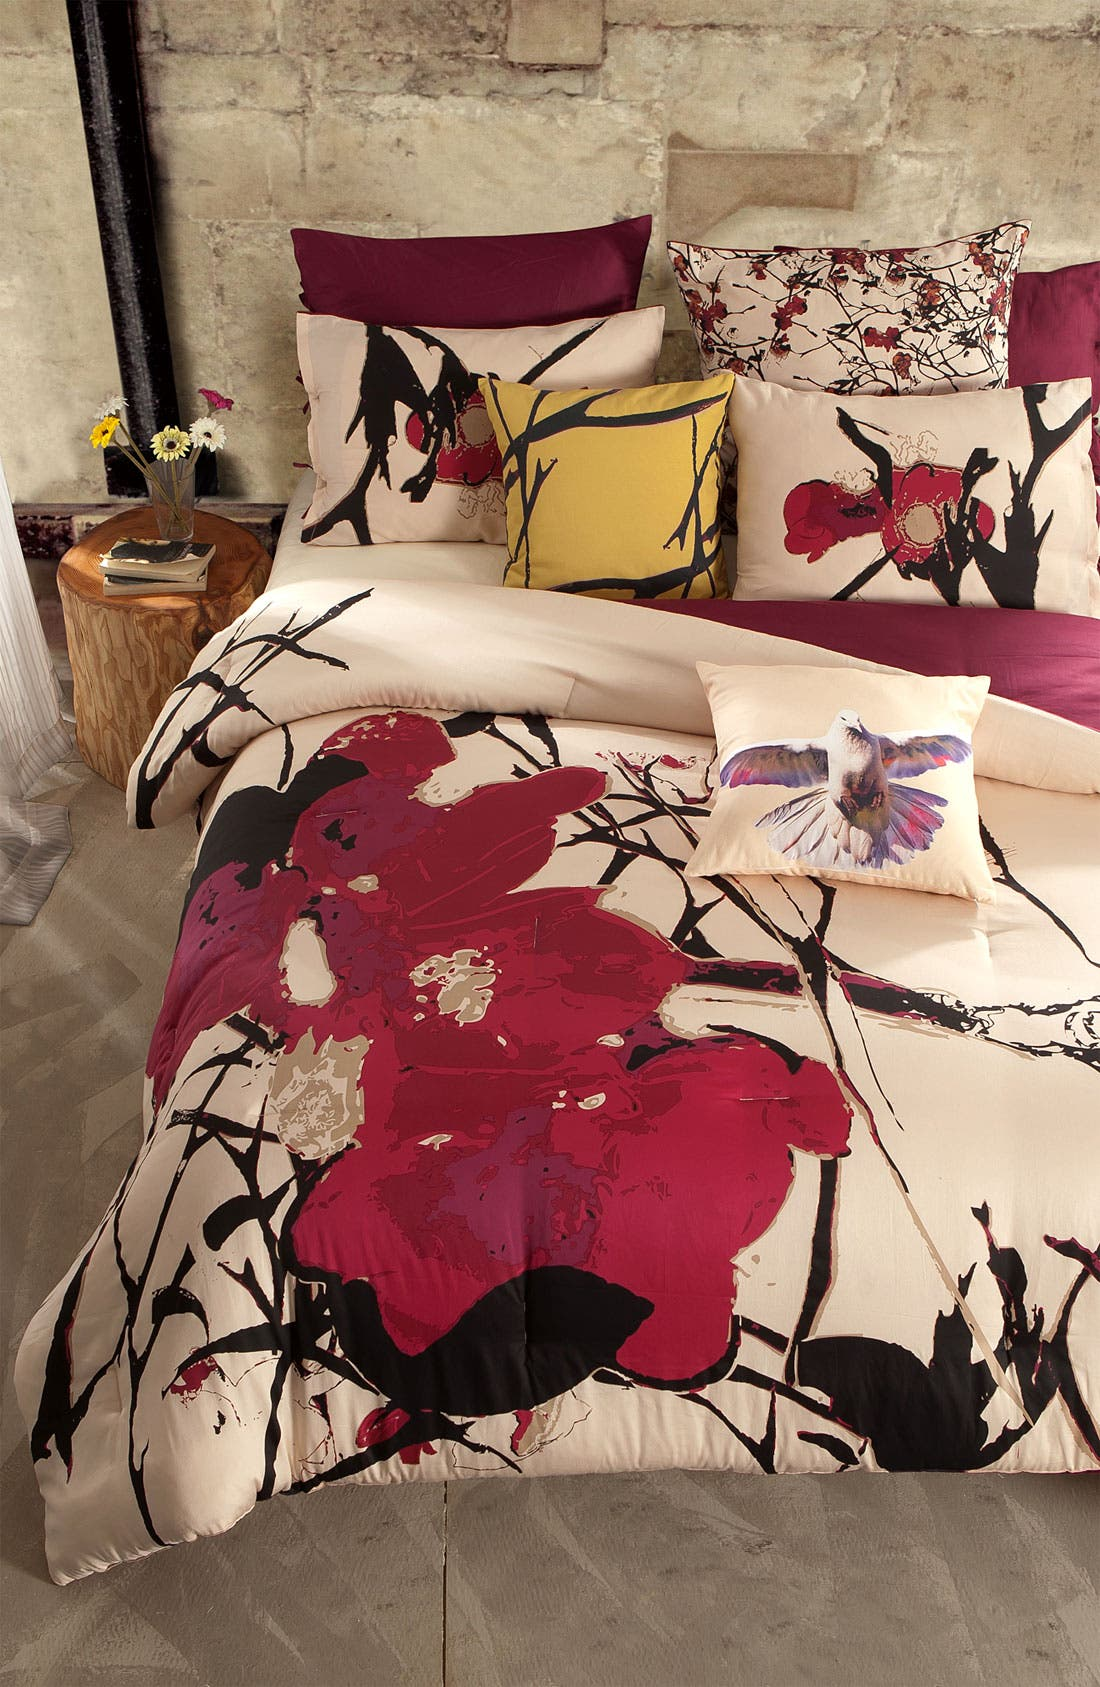 kensie 'Blossom' 300 Thread Count Cotton Comforter (Online Only)